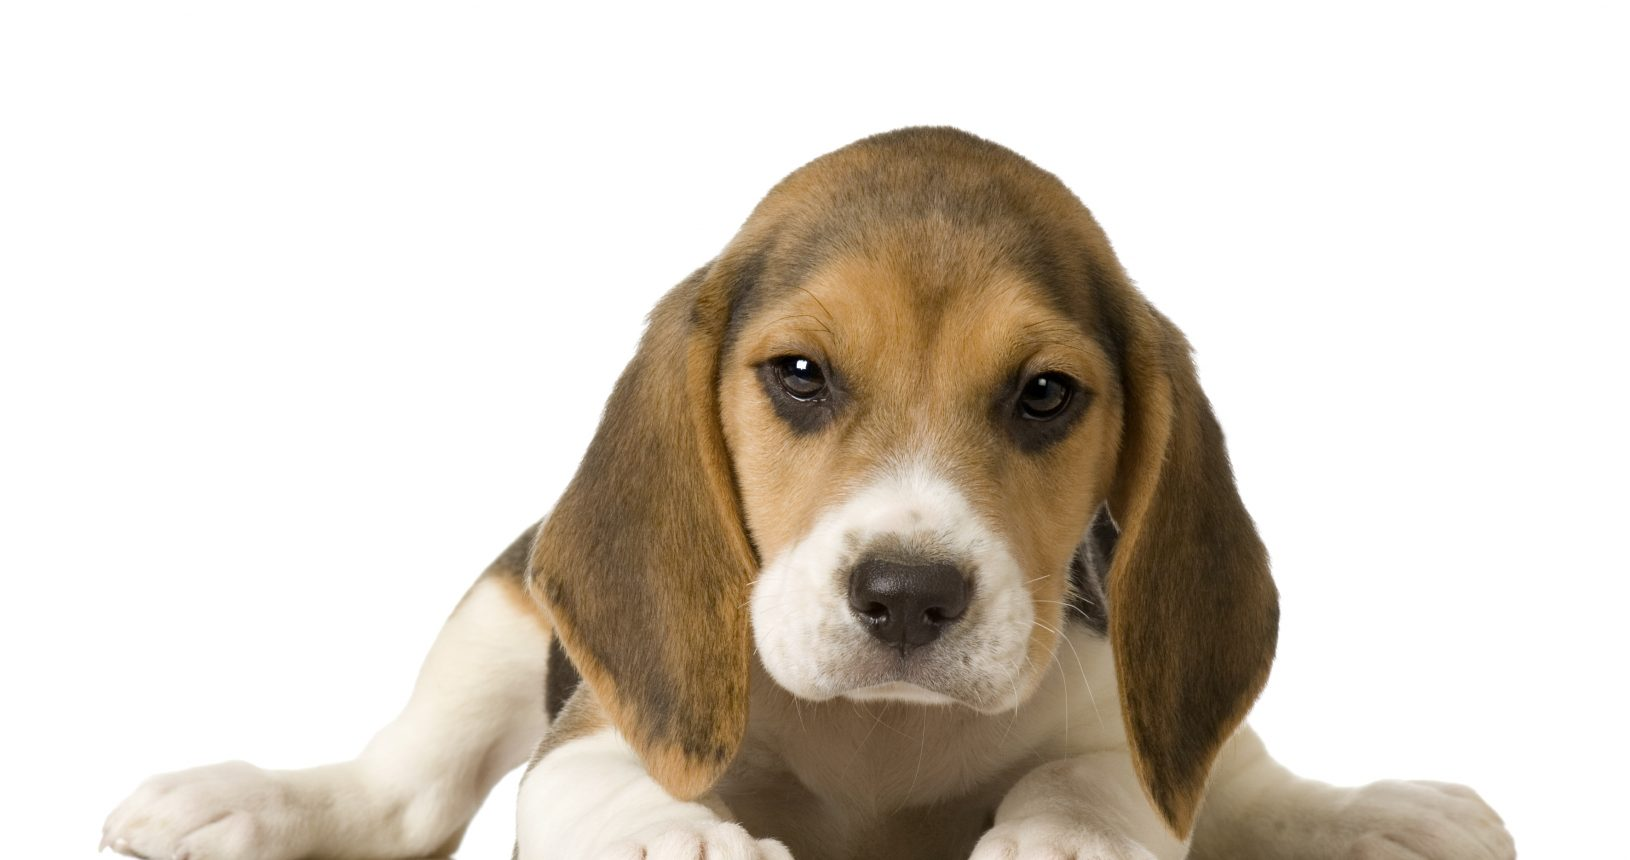 Beagle Puppies For Sale Singapore - Puppies Sale In Singapore Petshop